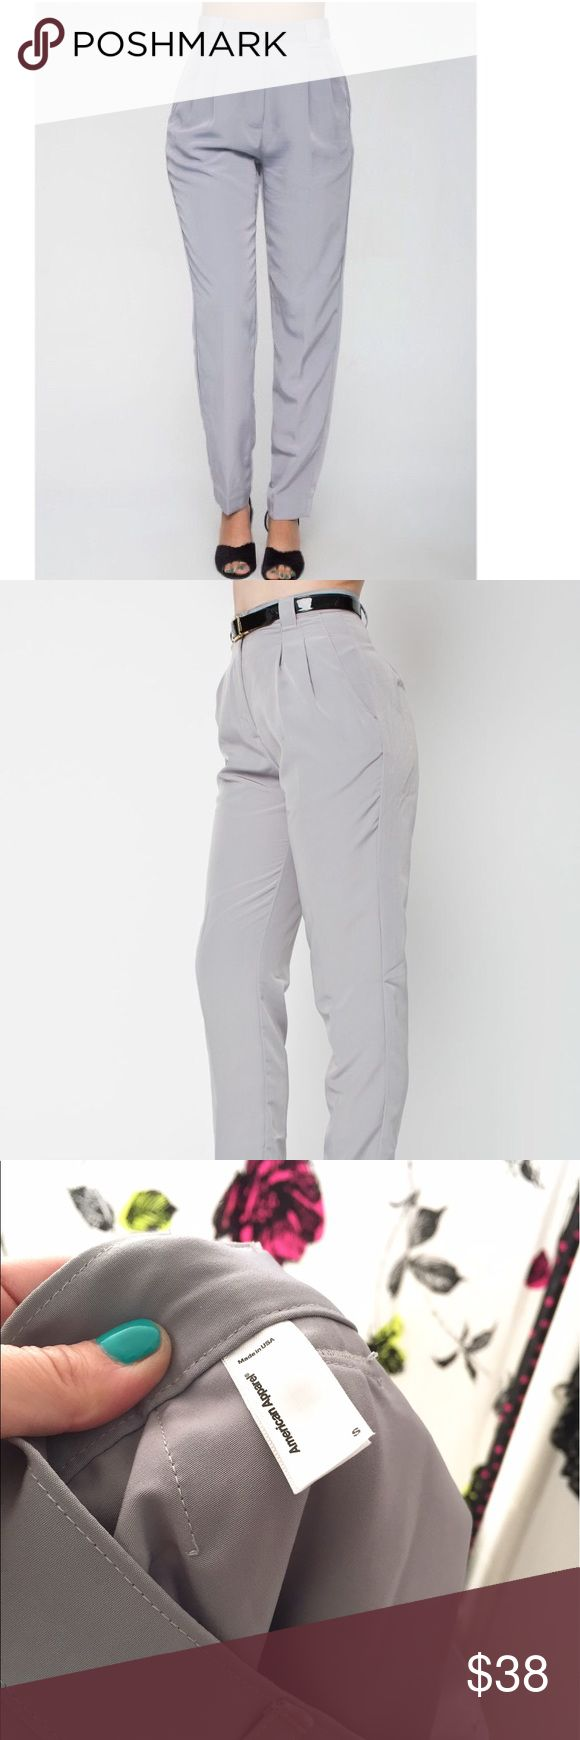 American apparel poly silk trouser American apparel poly silk trouser pants with pleats. Is a size small . Waist is measured at 13.5 inch. Across so it should fit 26-27 waist. Super cut but it's loose on me . The inseam is 29inch. Perfect condition . No signs of wear. Color is a light grey and the light it reflects a silver grey shine . American Apparel Pants Trousers